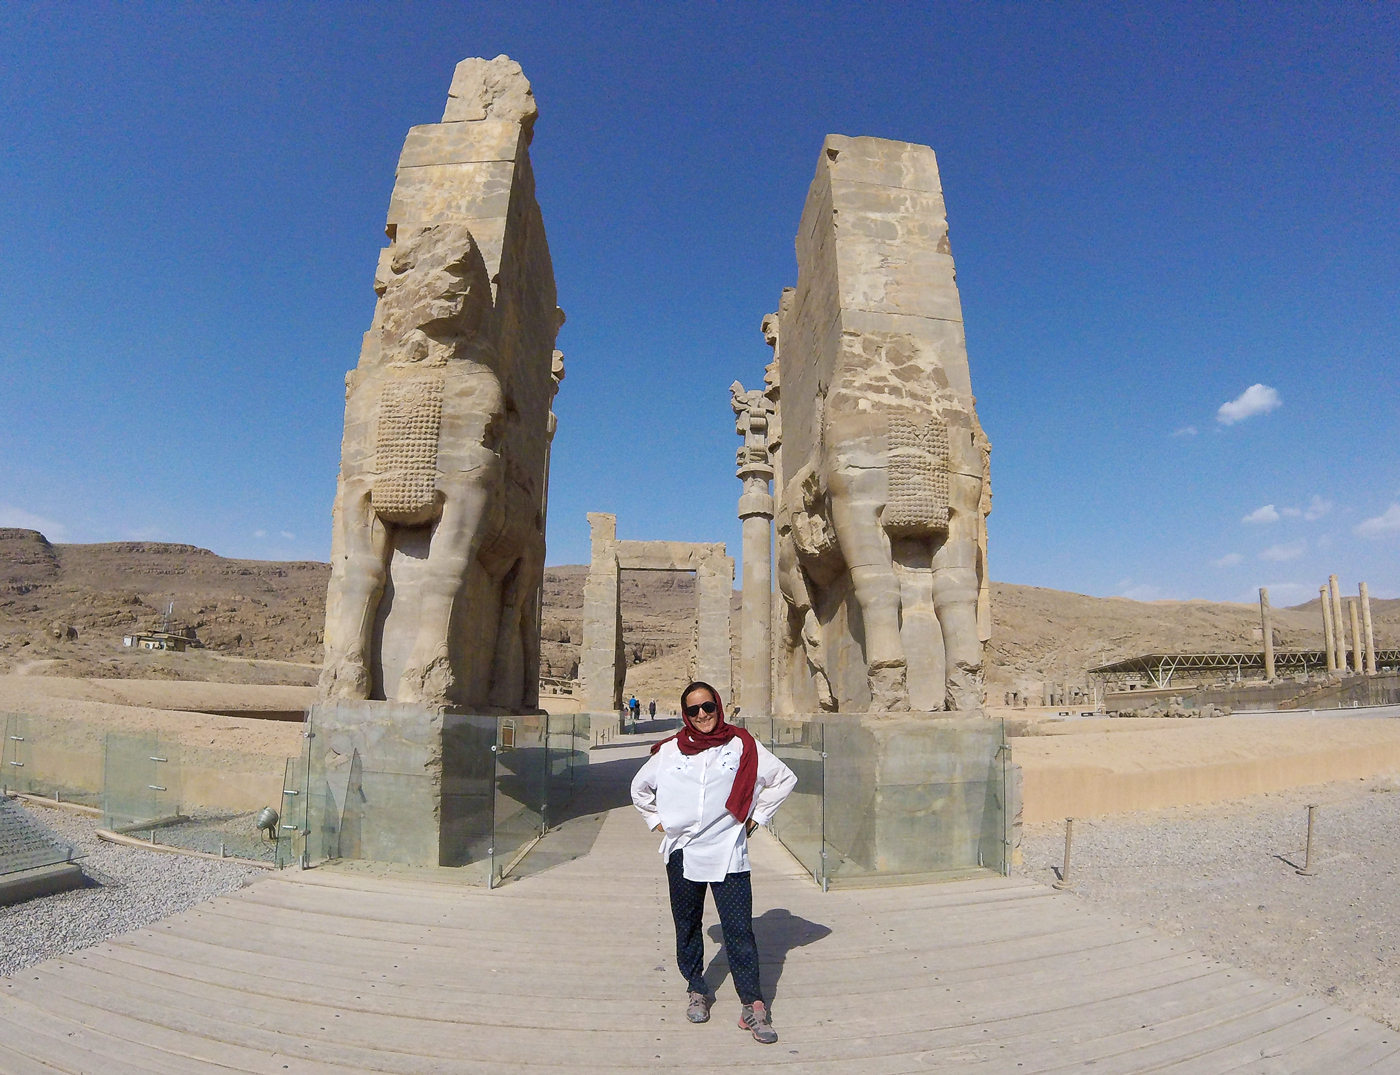 Voyage à vélo, traverser l'Iran à vélo, la porte des nations à Persépolis. Cycling travel, biketouring, cycling Iran, Persepolis Gate of All Nations